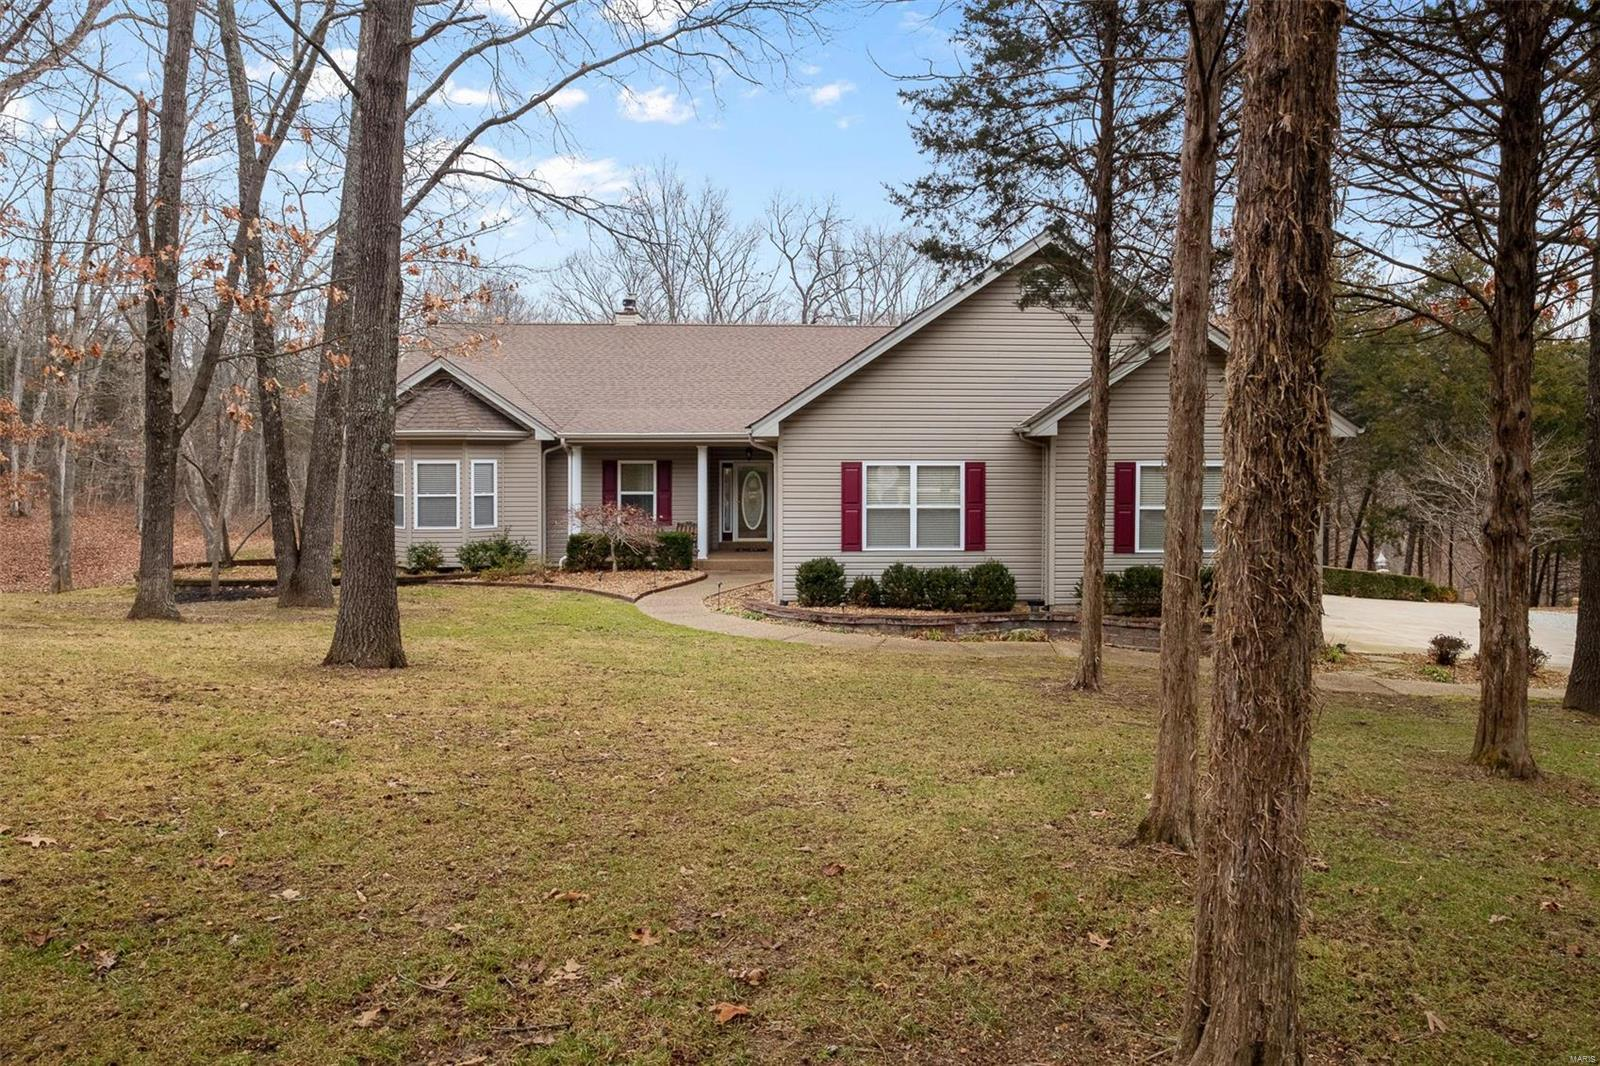 143 Falcons Wing Property Photo - Wright City, MO real estate listing